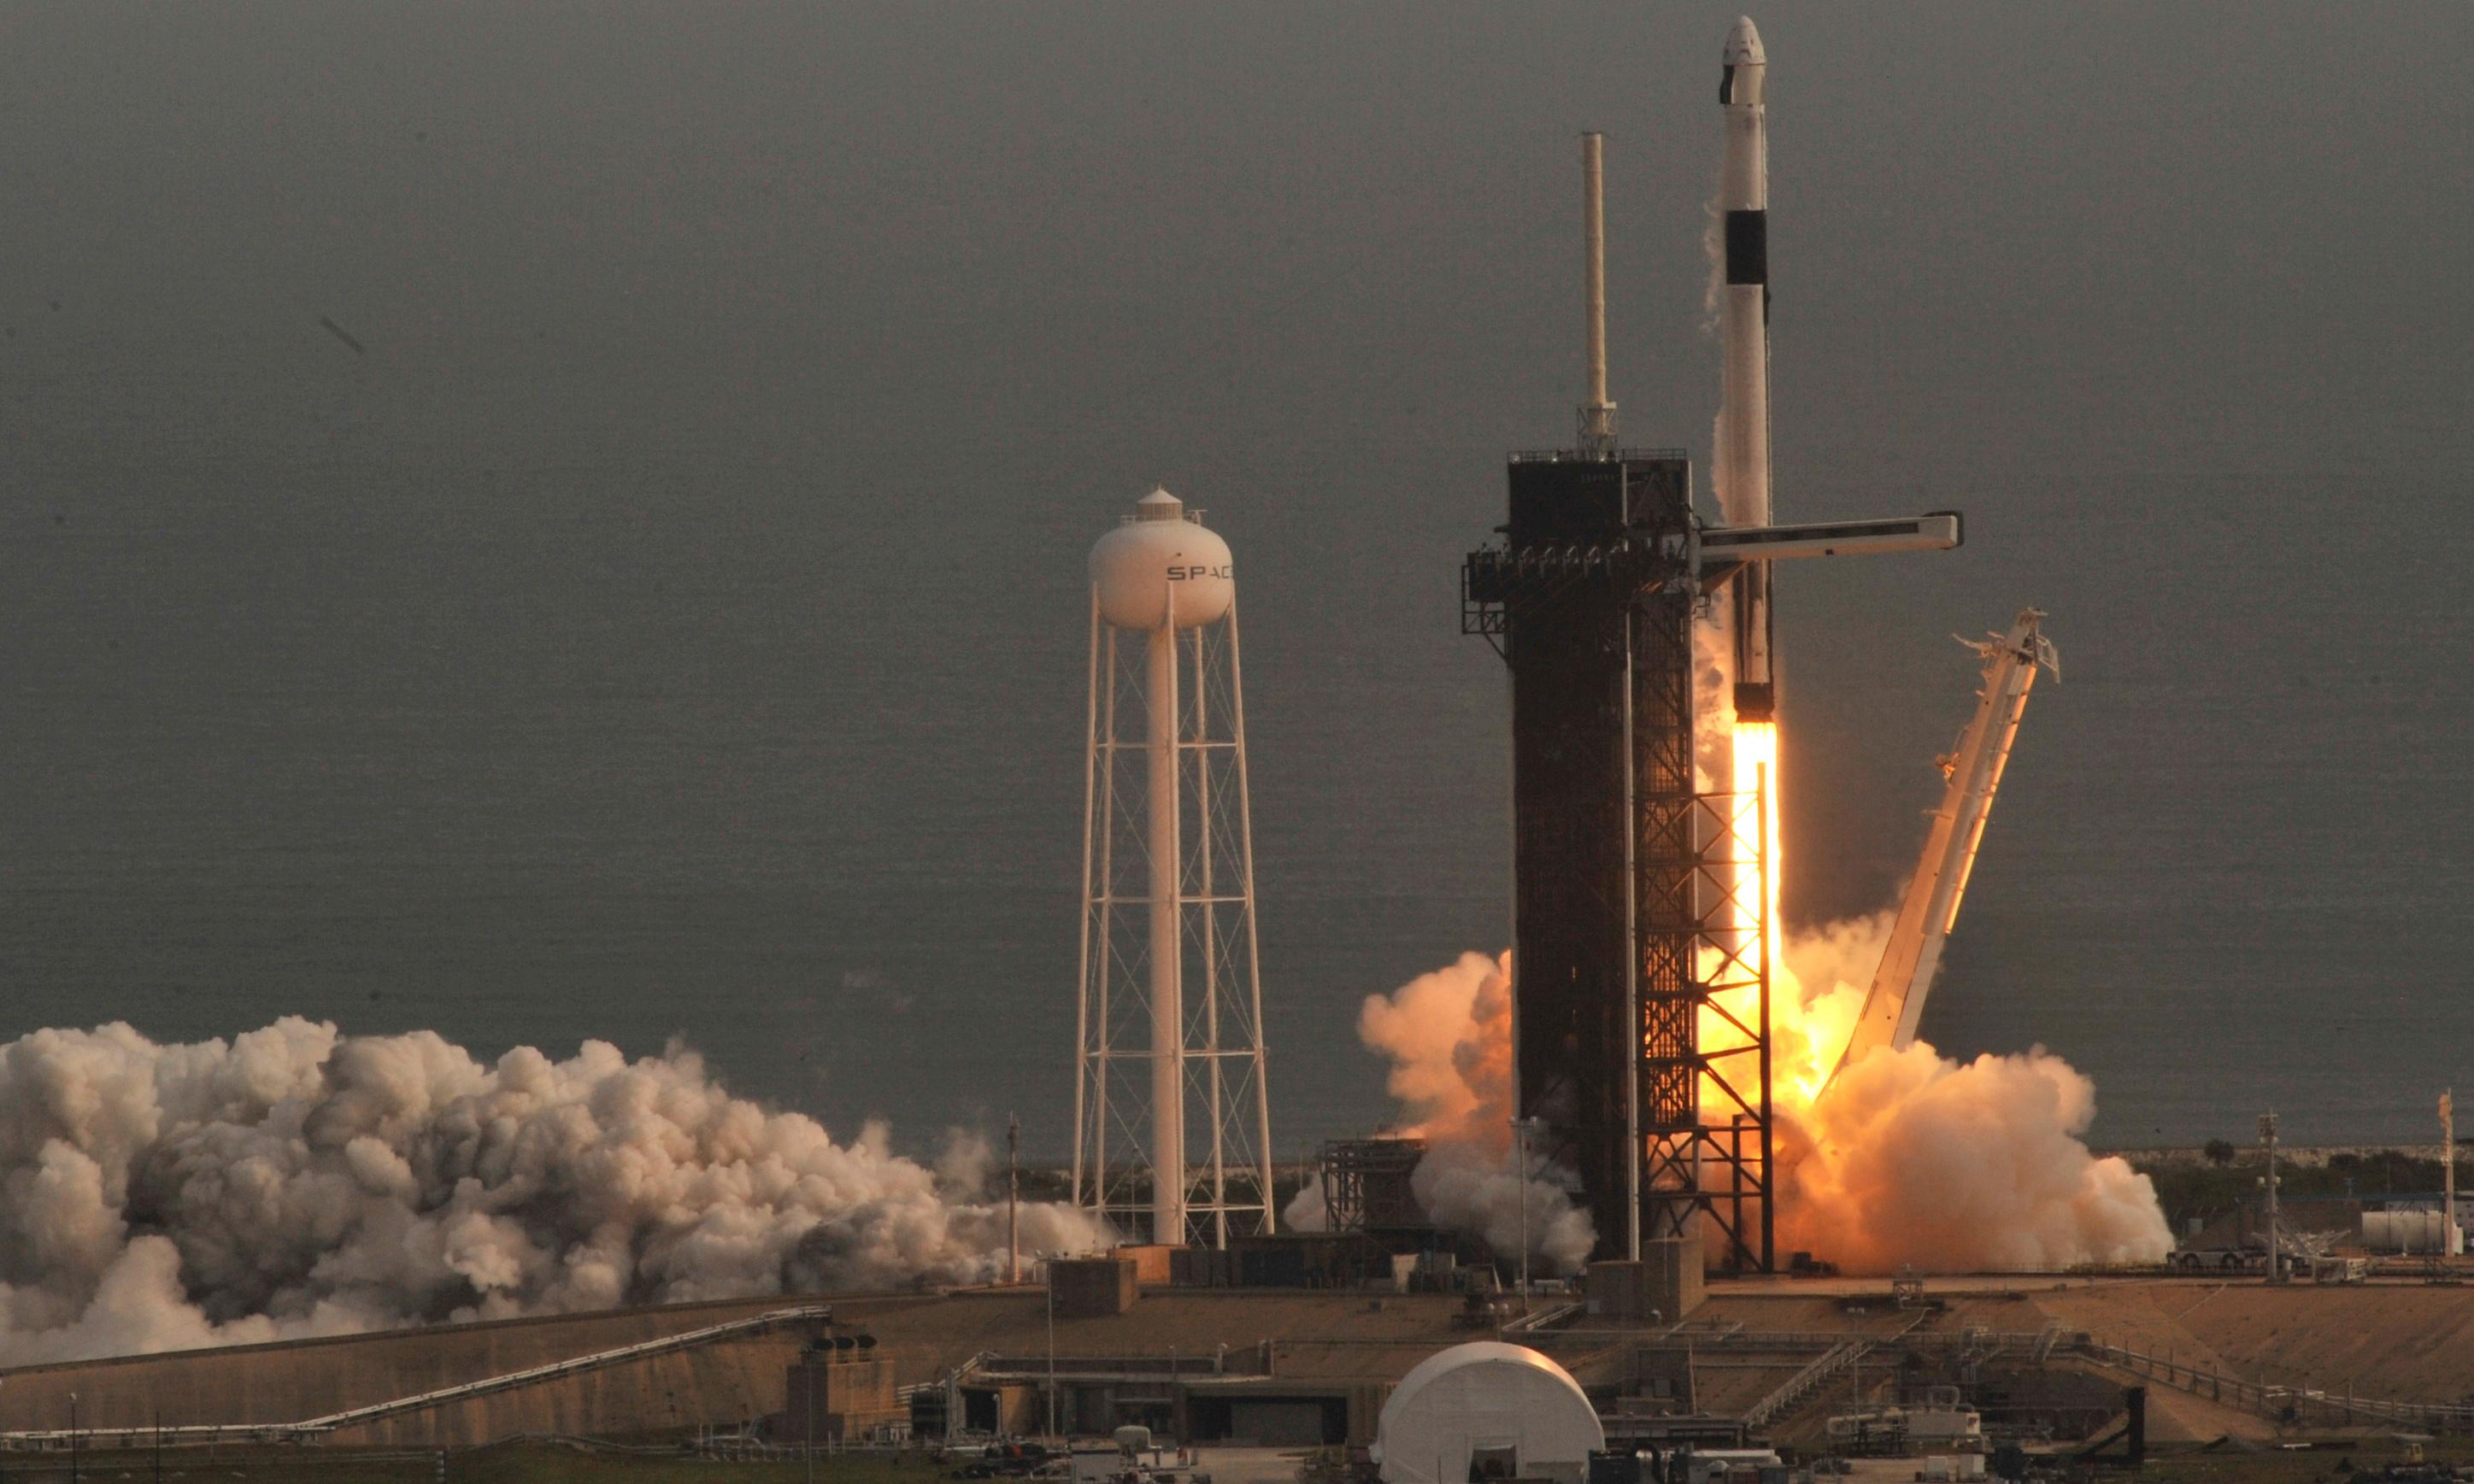 SpaceX crew capsule escape test a success as crowds watch rocket explode